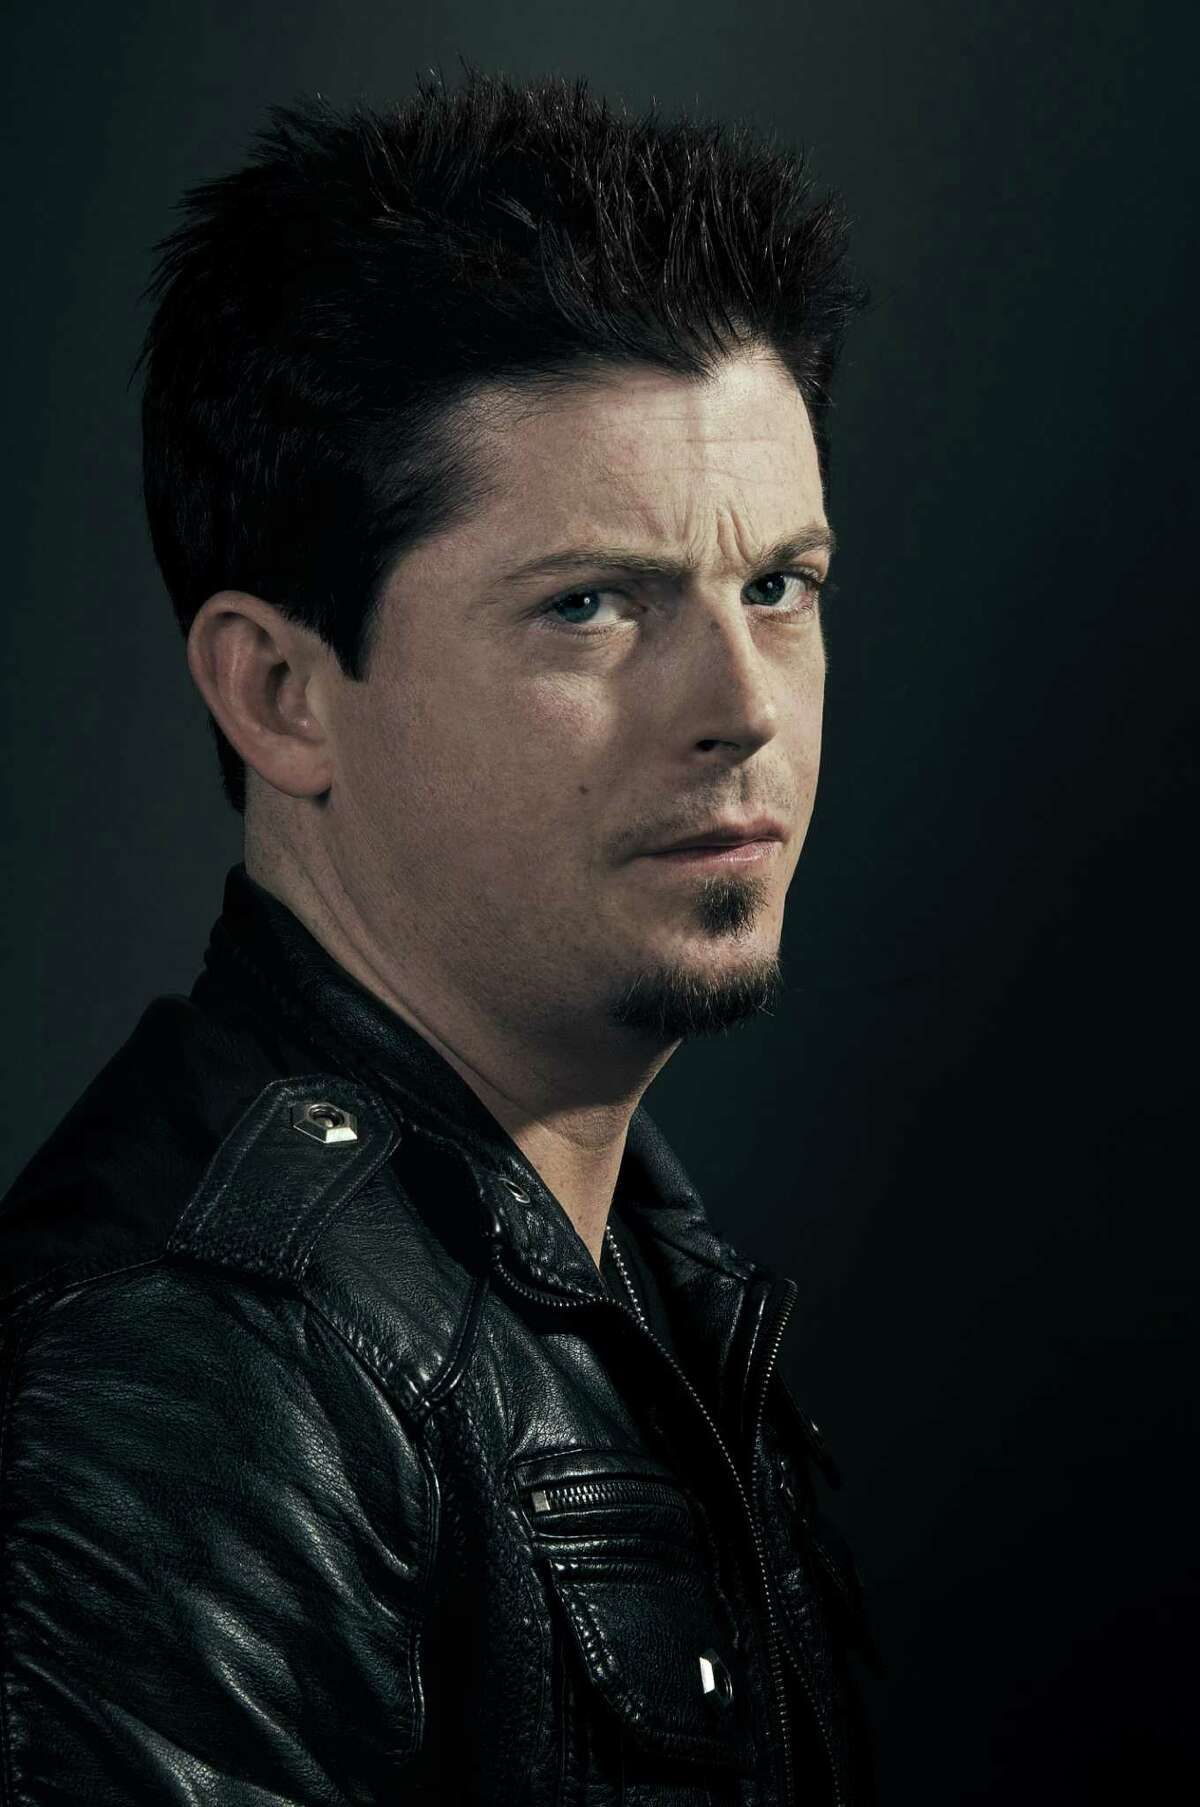 Manu Intiraymi, who appeared on Star Trek: Voyager, will be coming to Space City Con in 2013